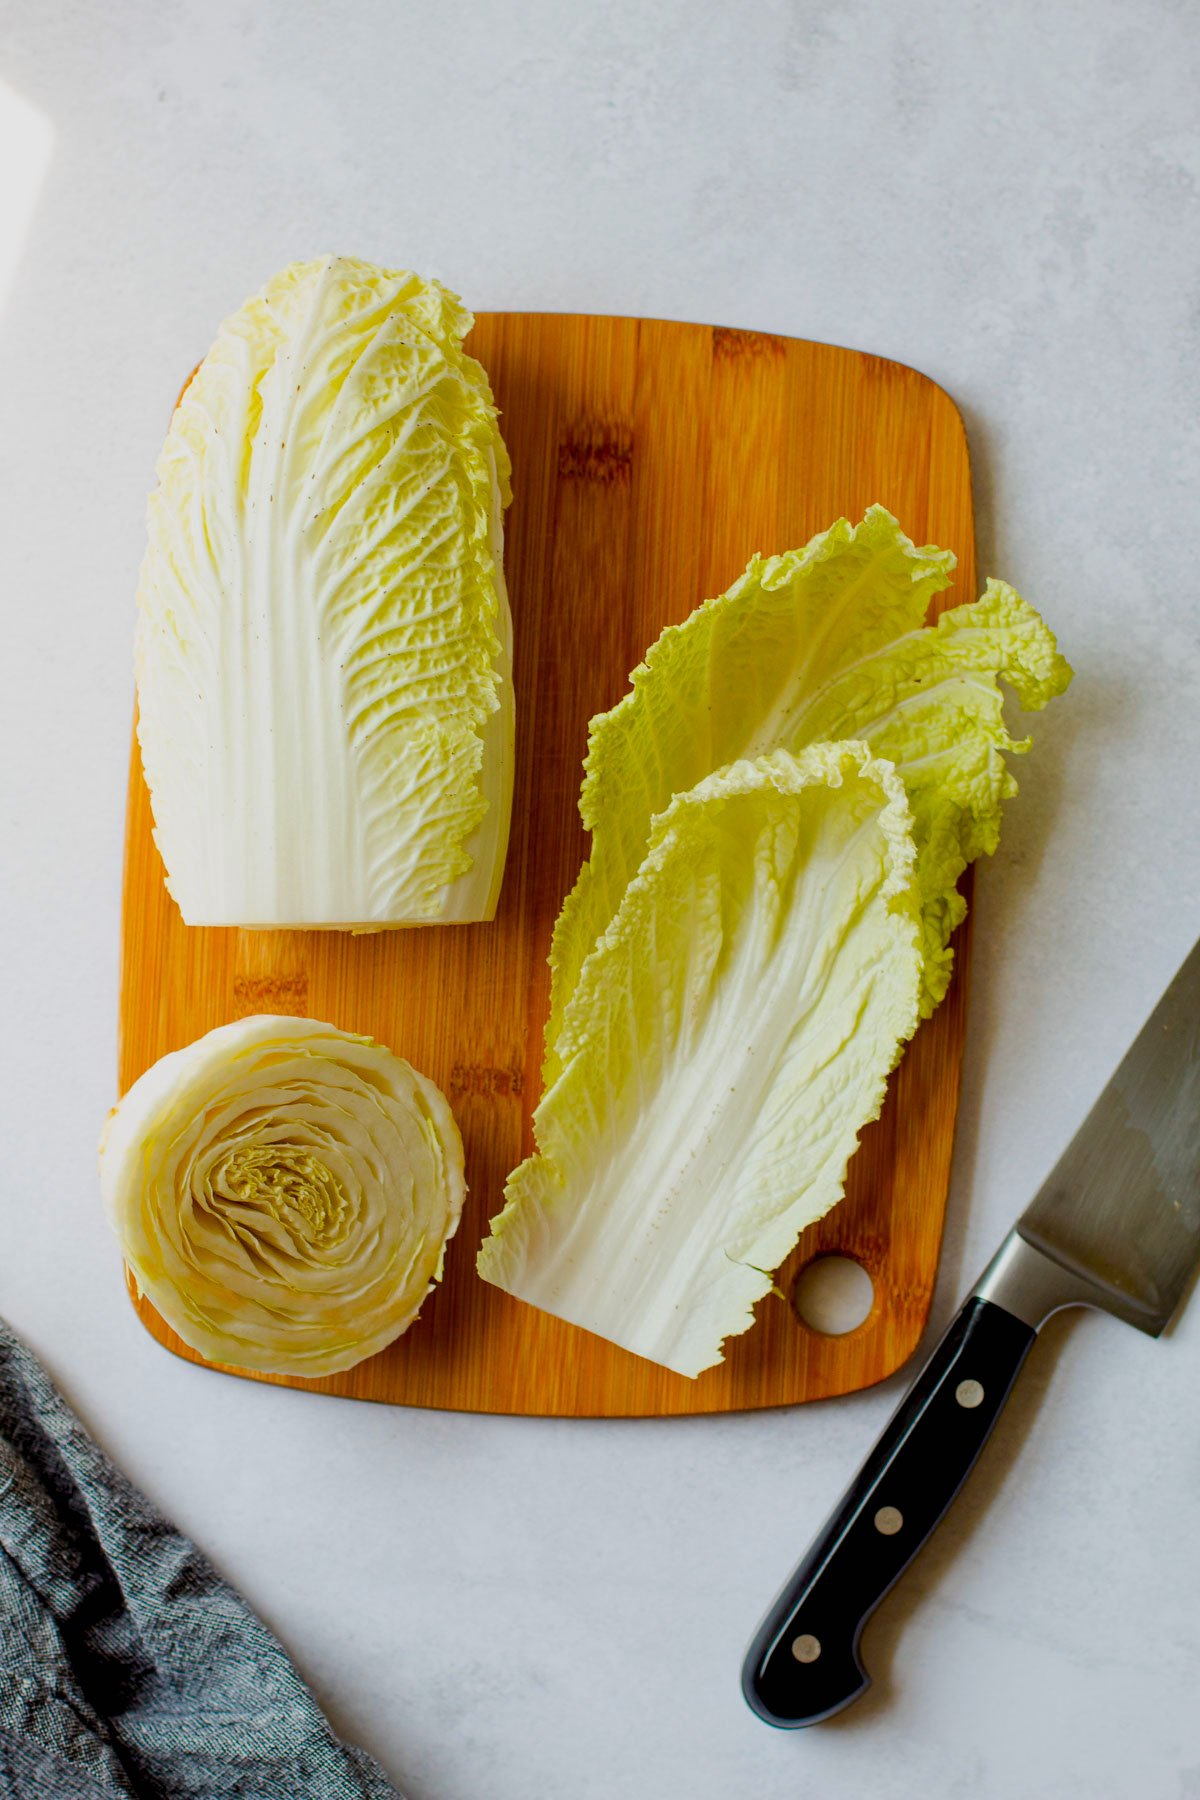 Napa cabbage for beef cabbage wraps.